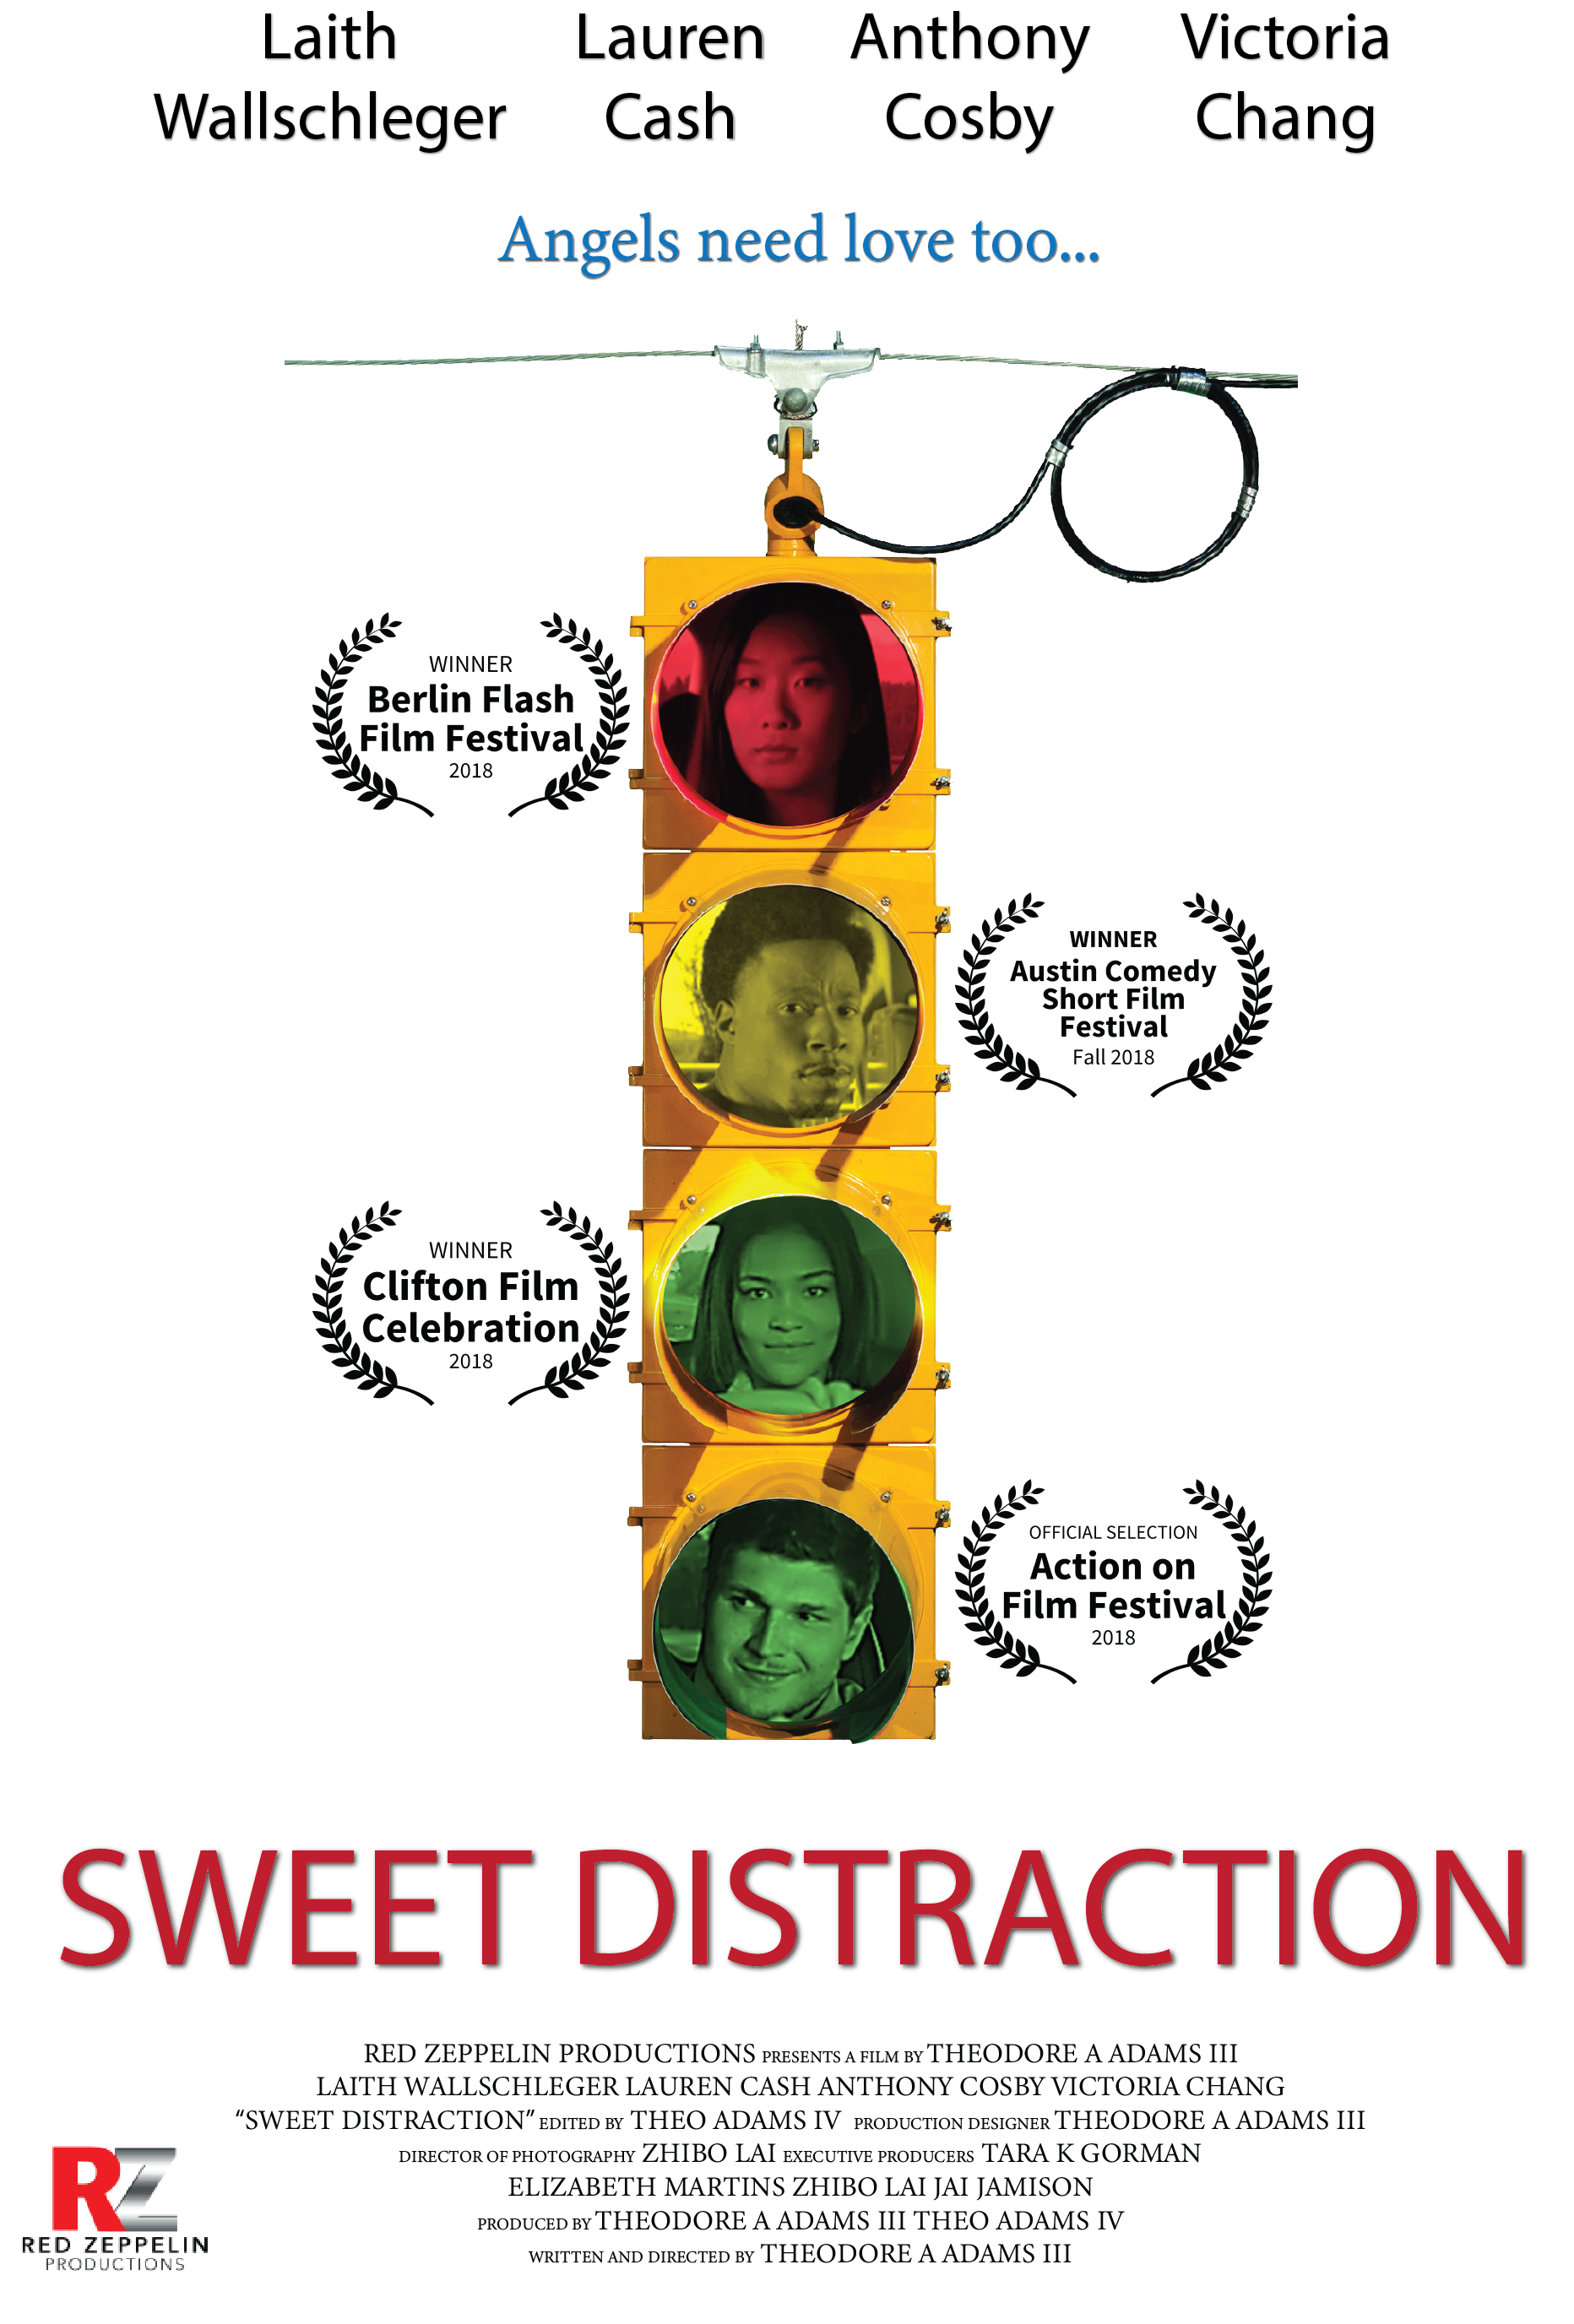 Sweet Distraction Poster 7.20.18.png